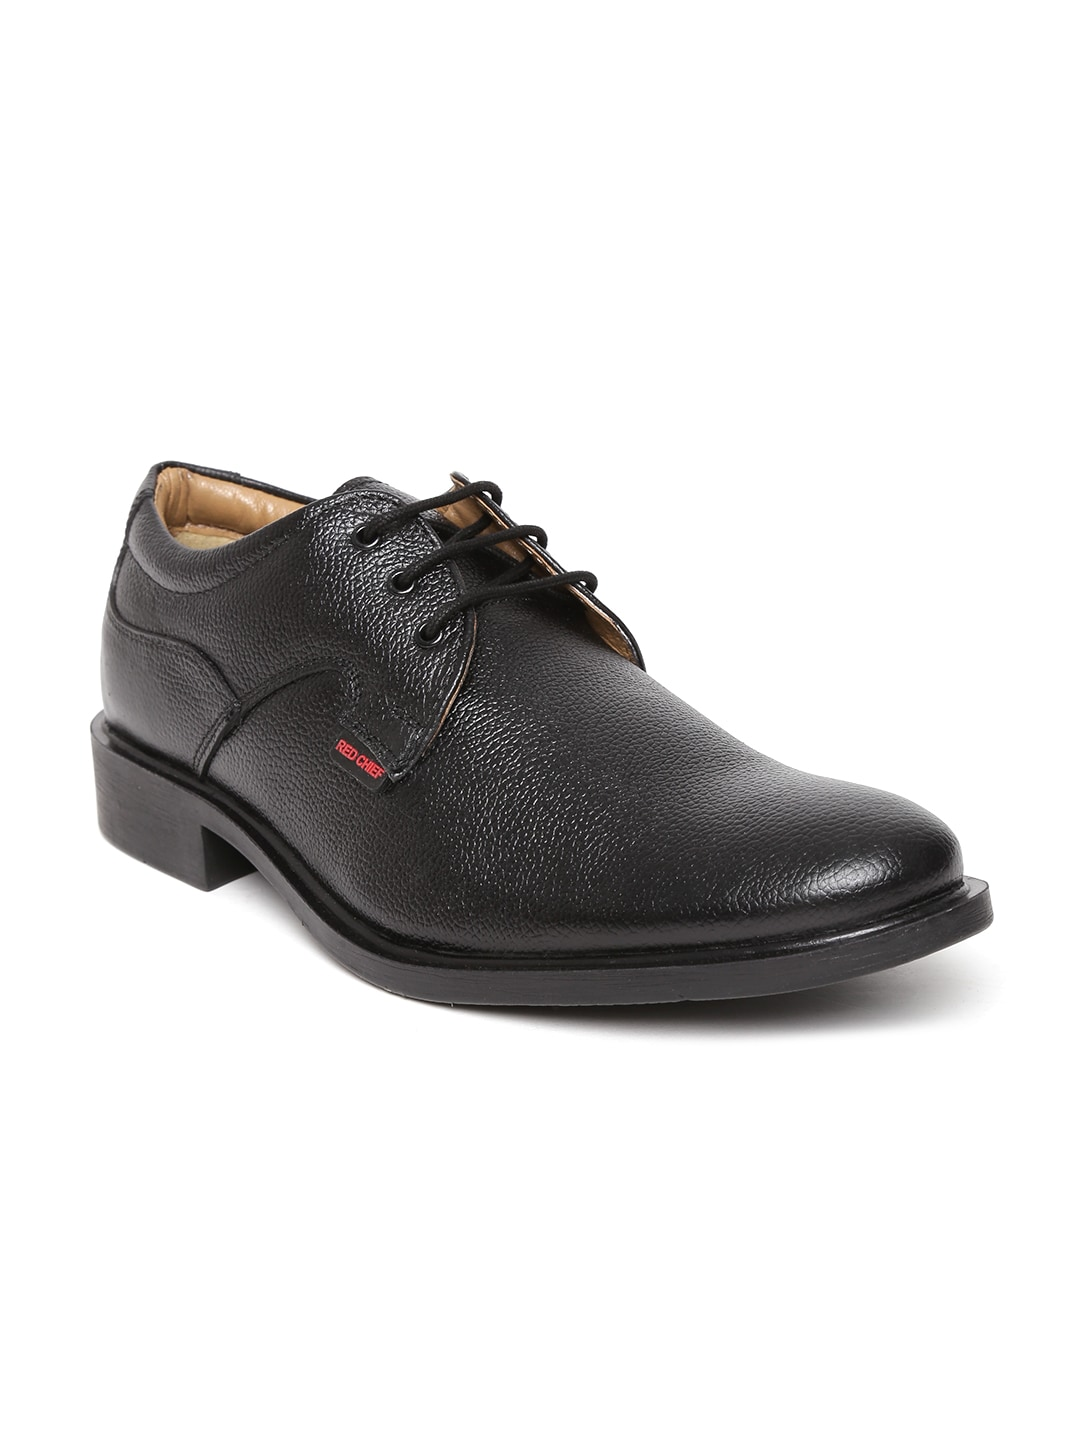 Buy Red Chief Men Black Leather Formal Shoes - 633